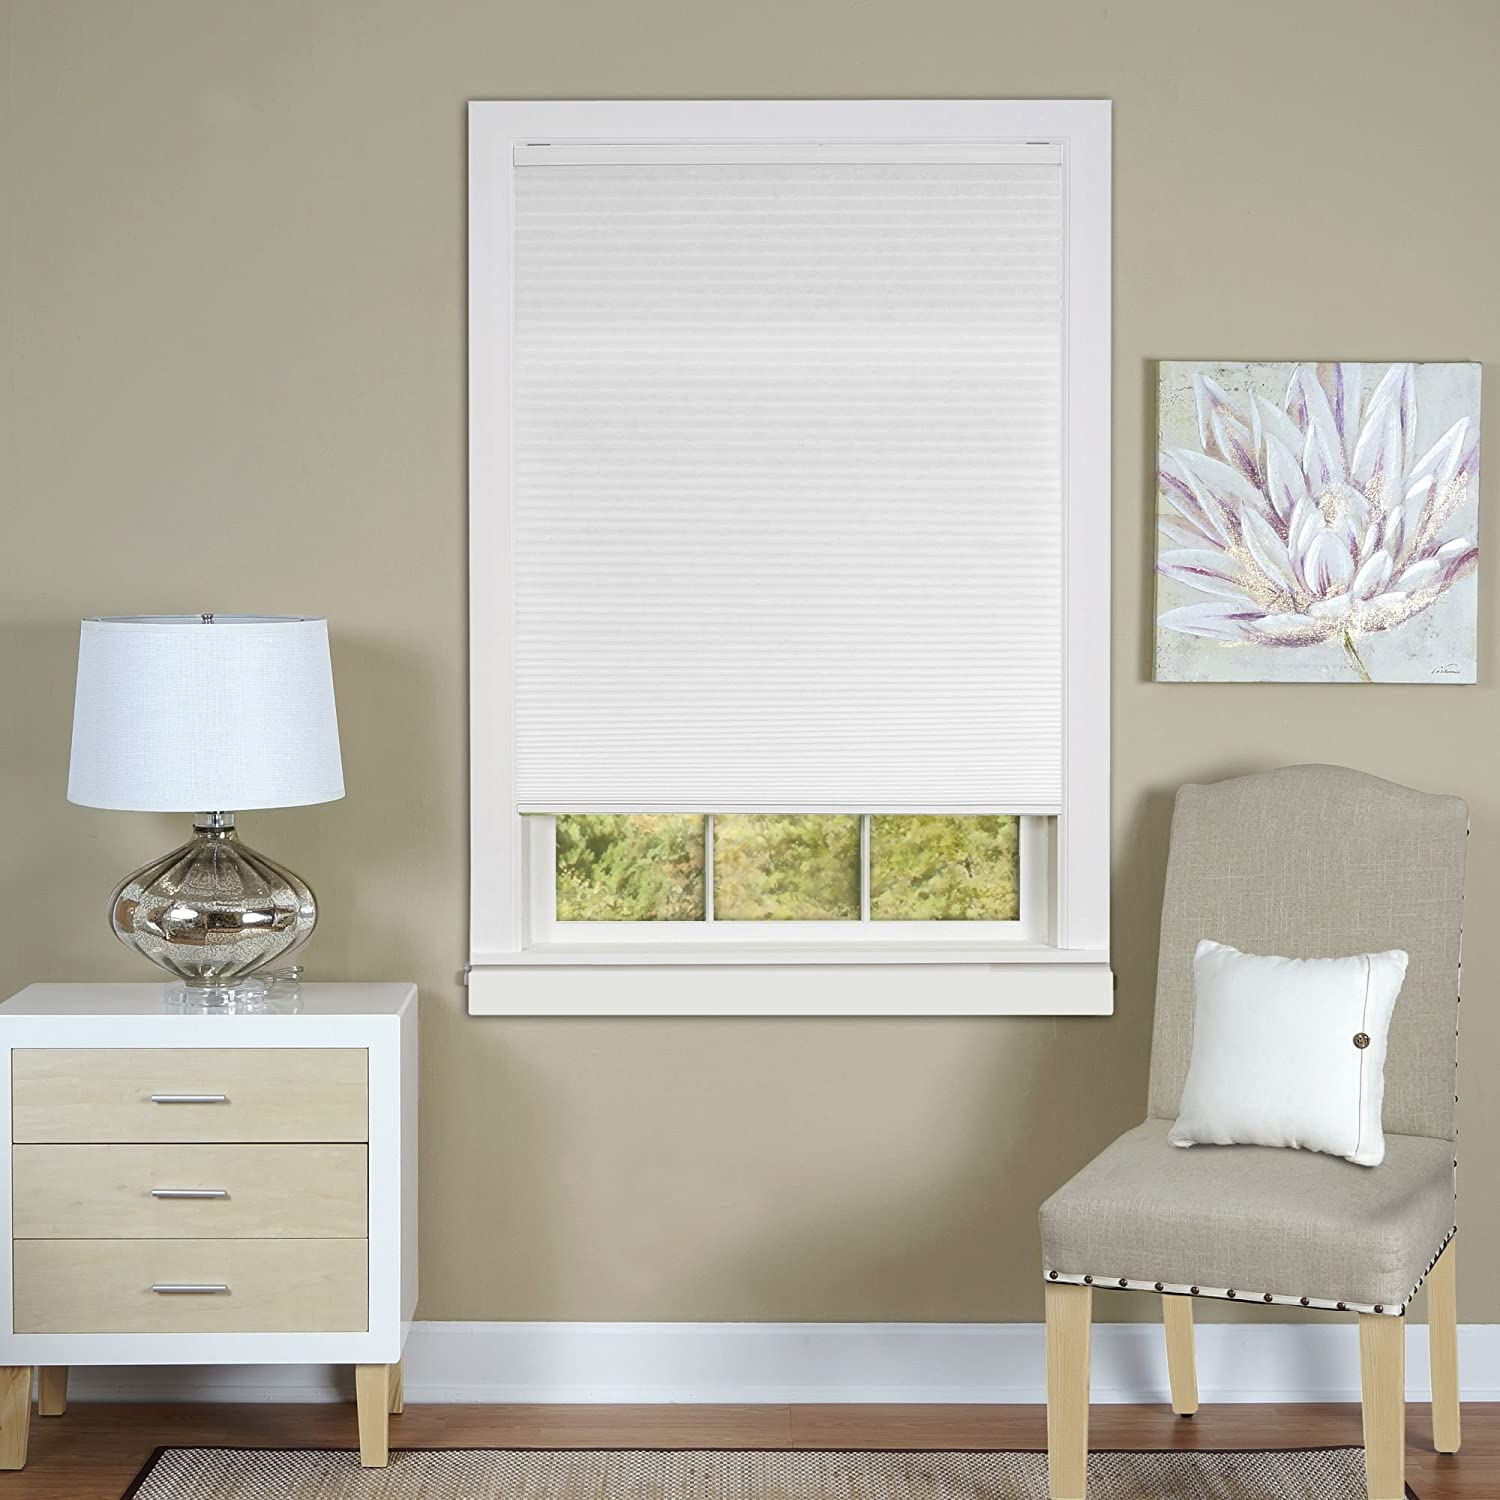 priva window getimage stop s free combi zebra roller sheer shld cordless curtain blind layer blinds url shades or chicology dual drape